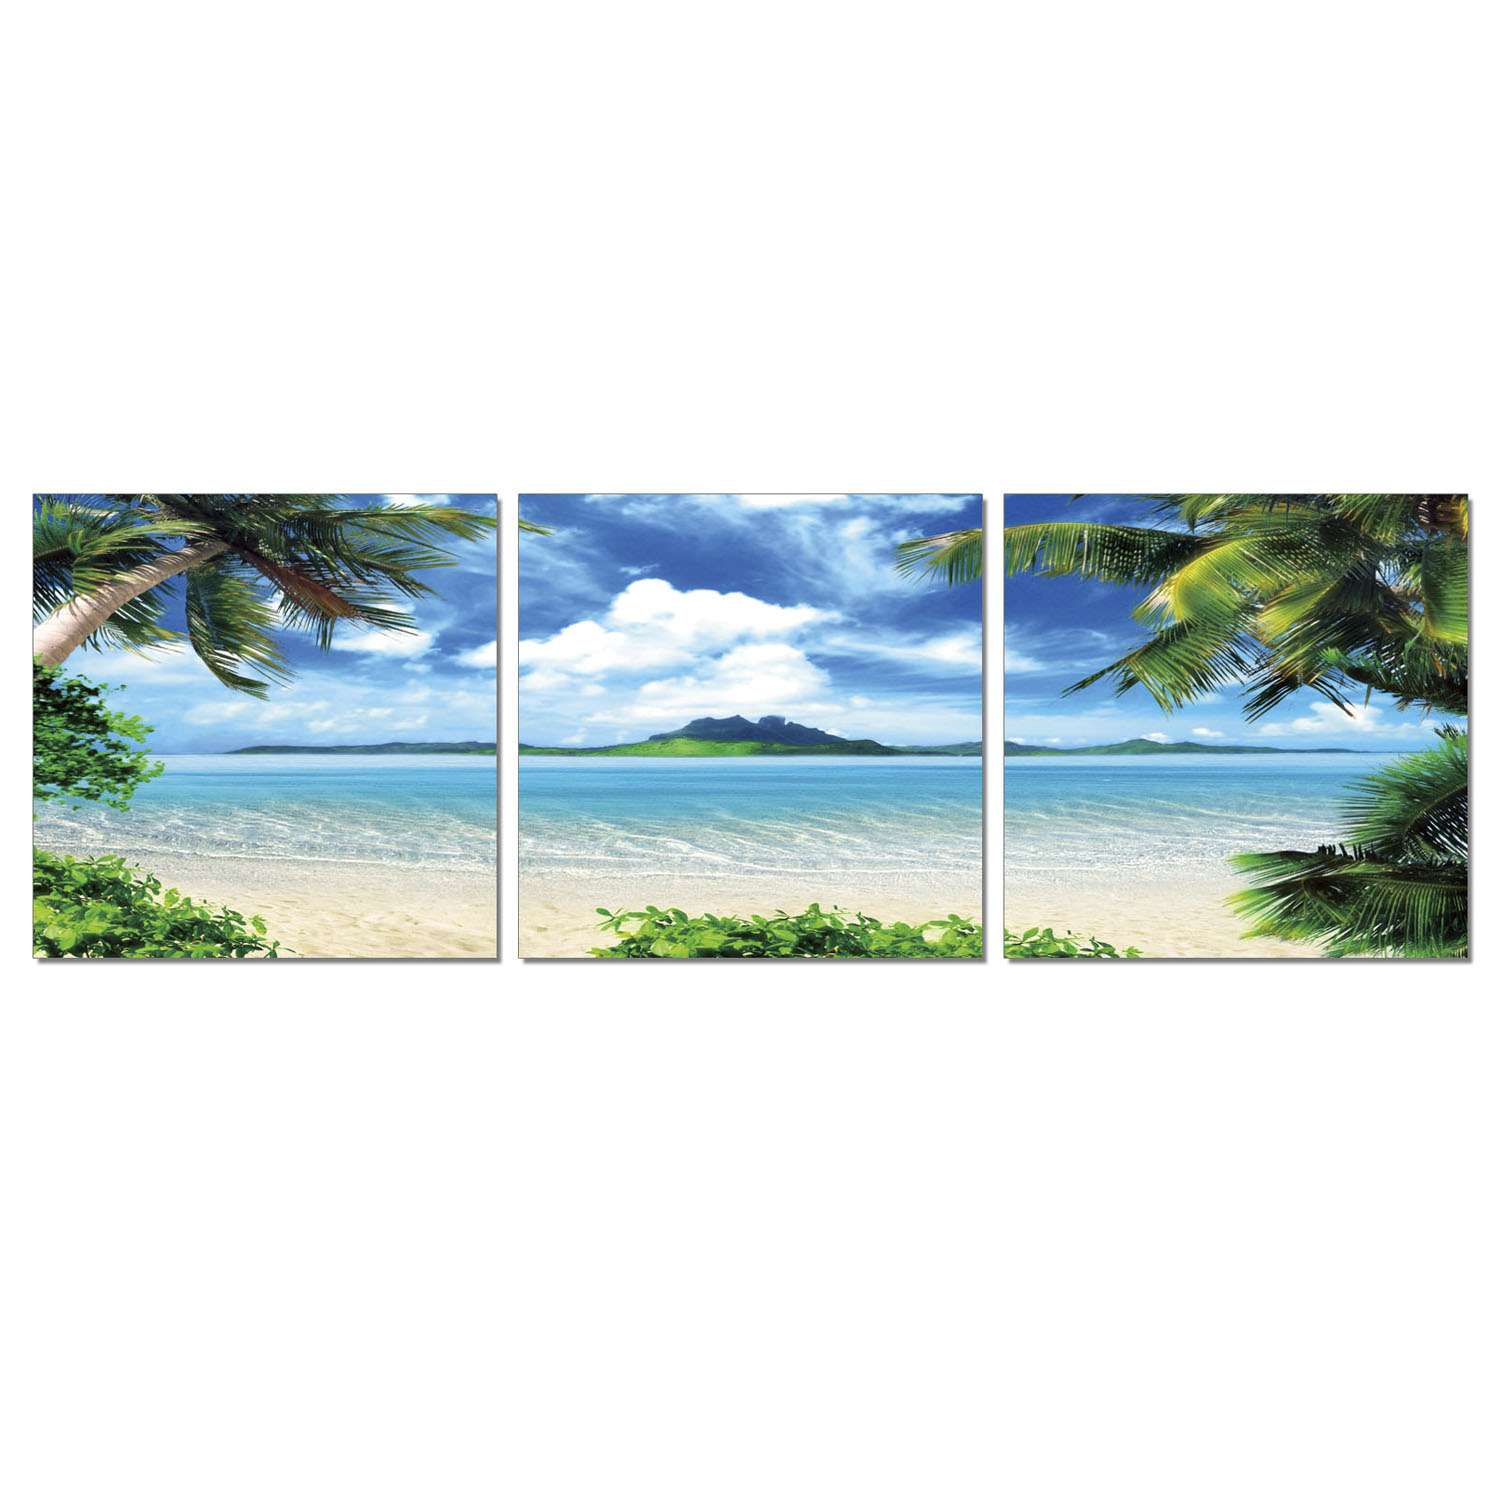 Furinno F089CT60 SENIK Coconut Tree Scenery 3-Panel MDF Framed Ph